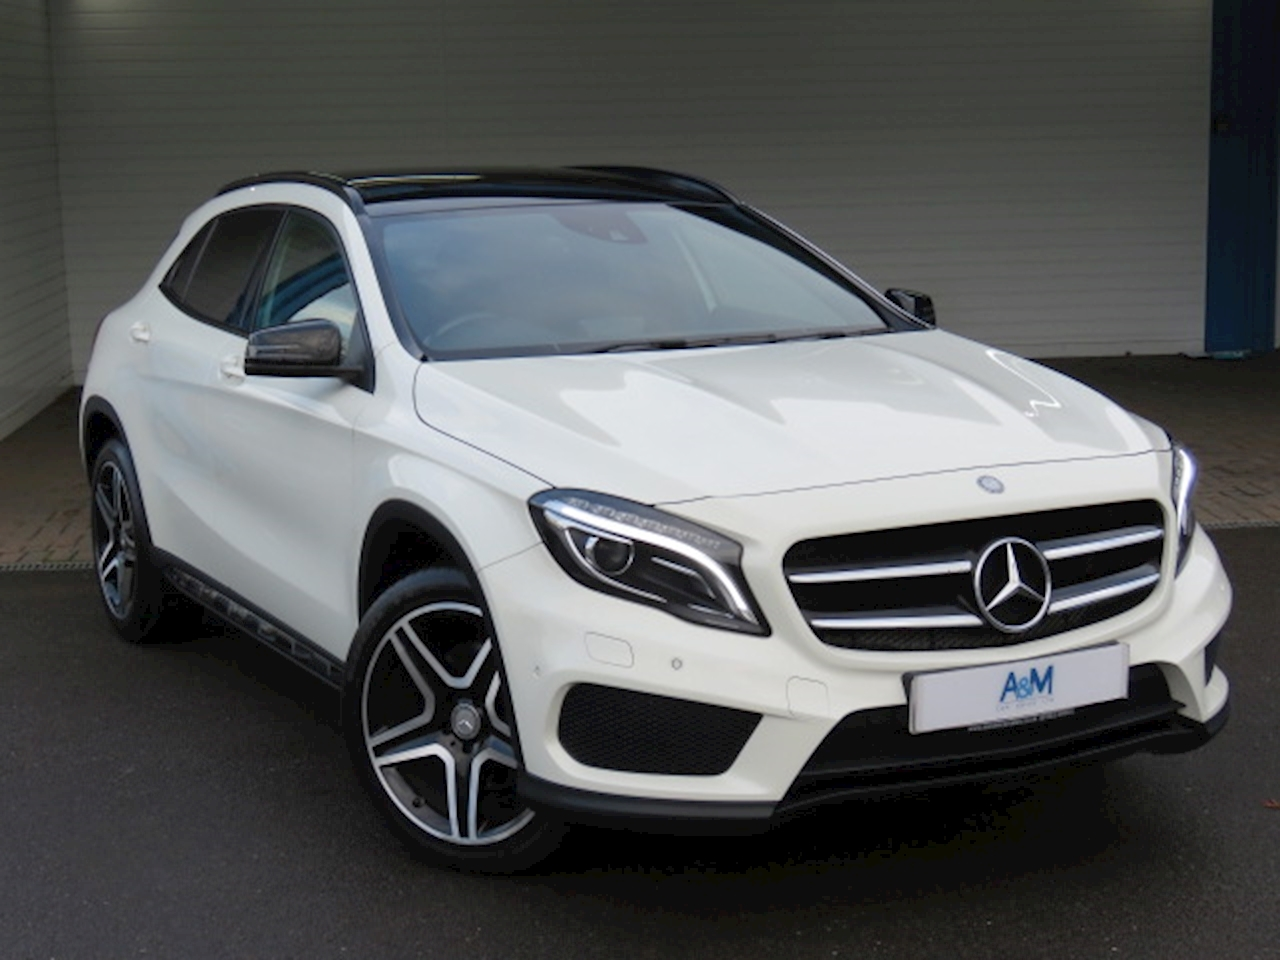 Mercedes-Benz GLA Class AMG Line 2.1 5dr SUV Automatic Diesel